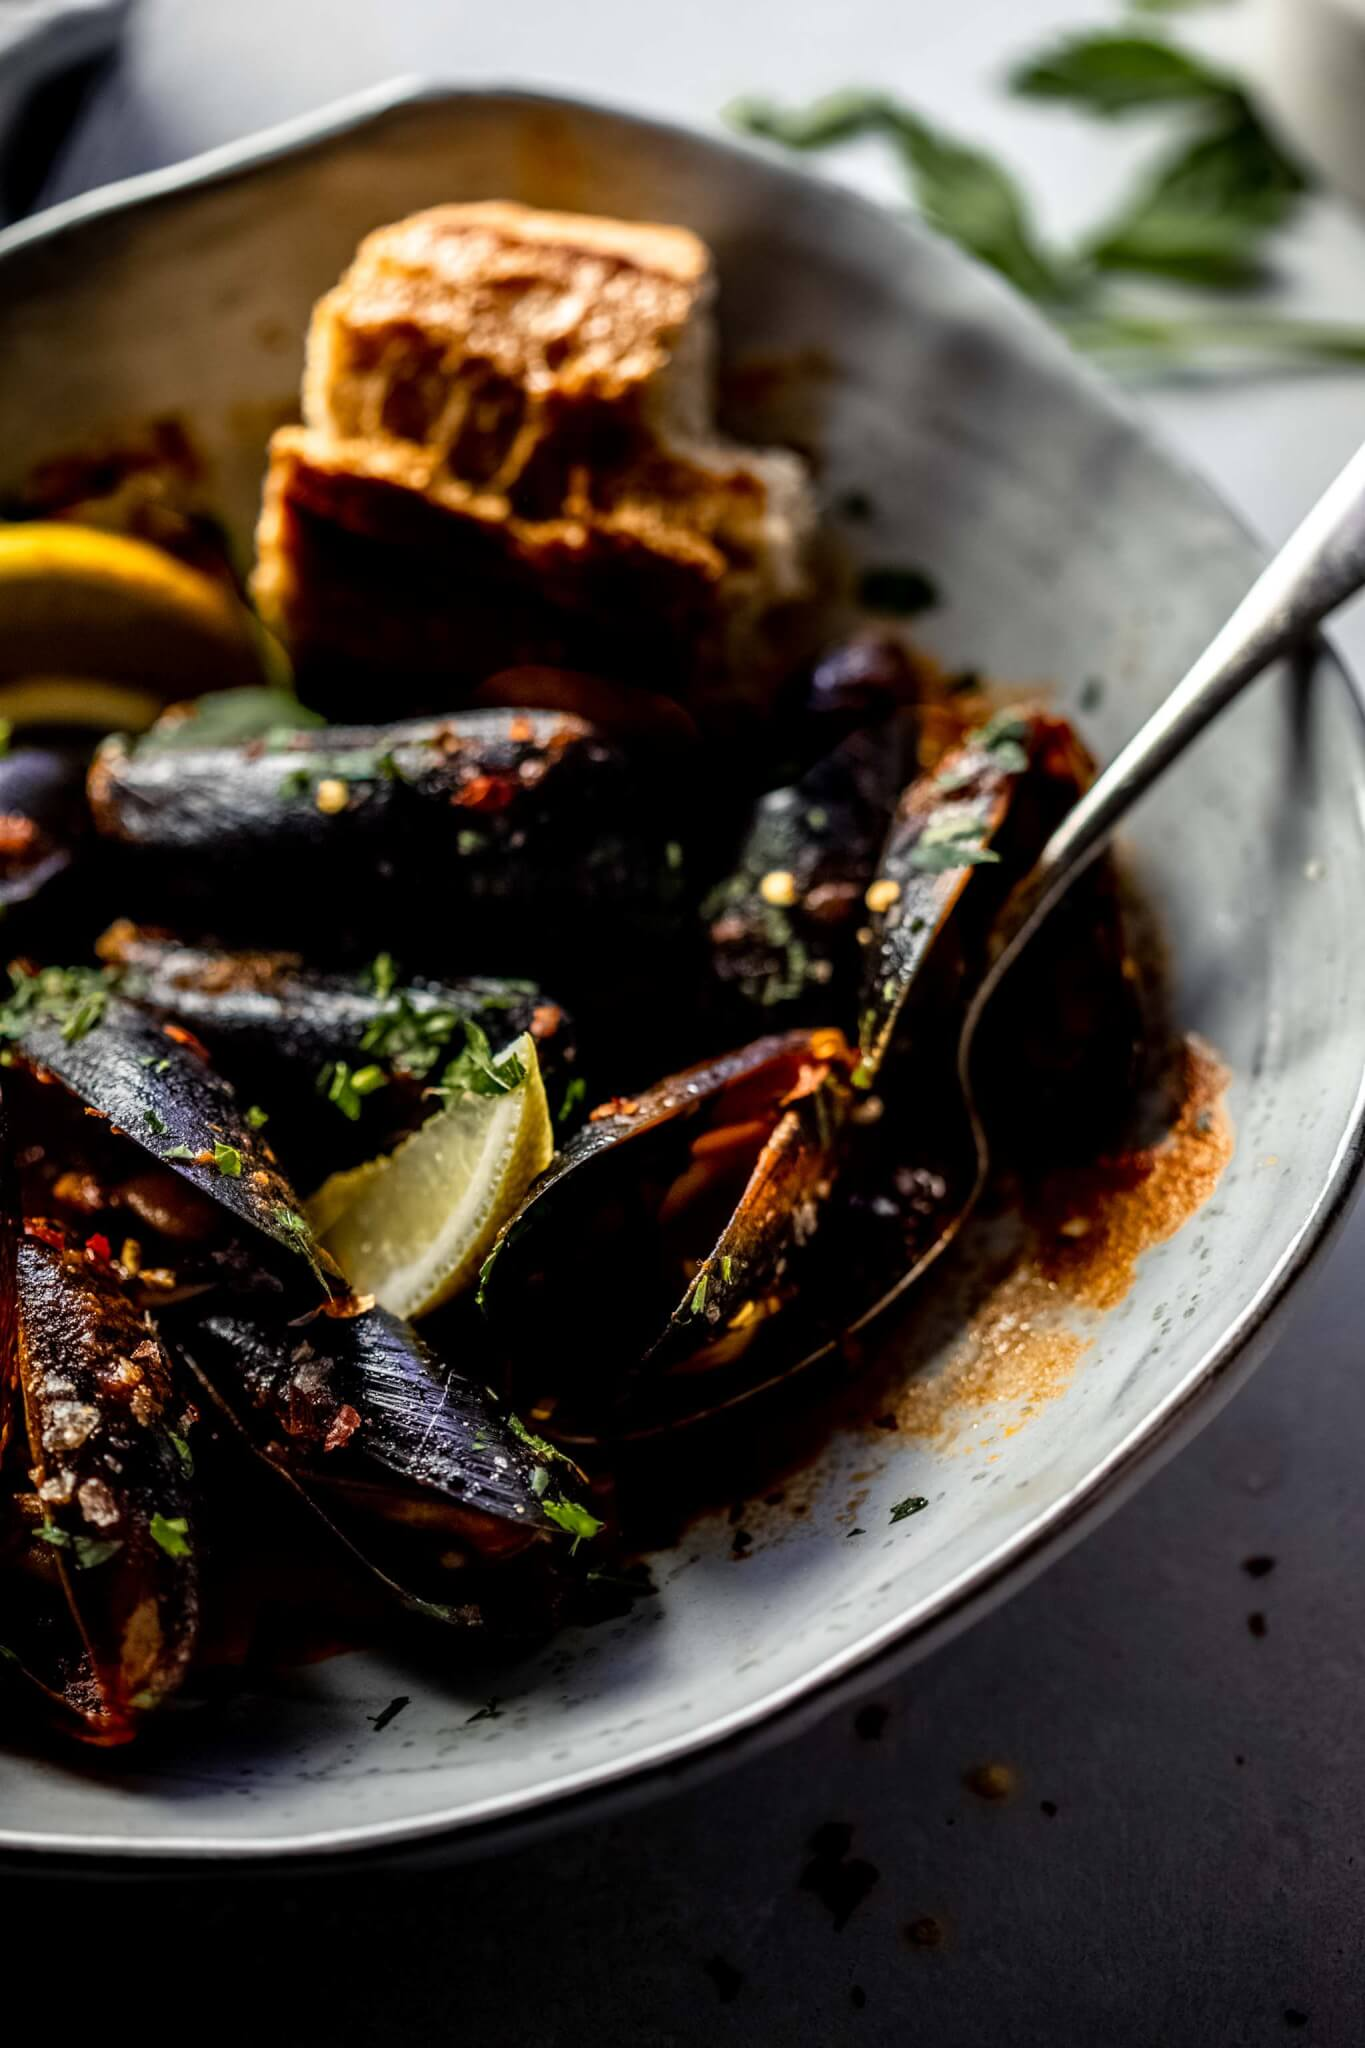 Side view of bowl of cooked mussels in marinara served with piece of baguette.